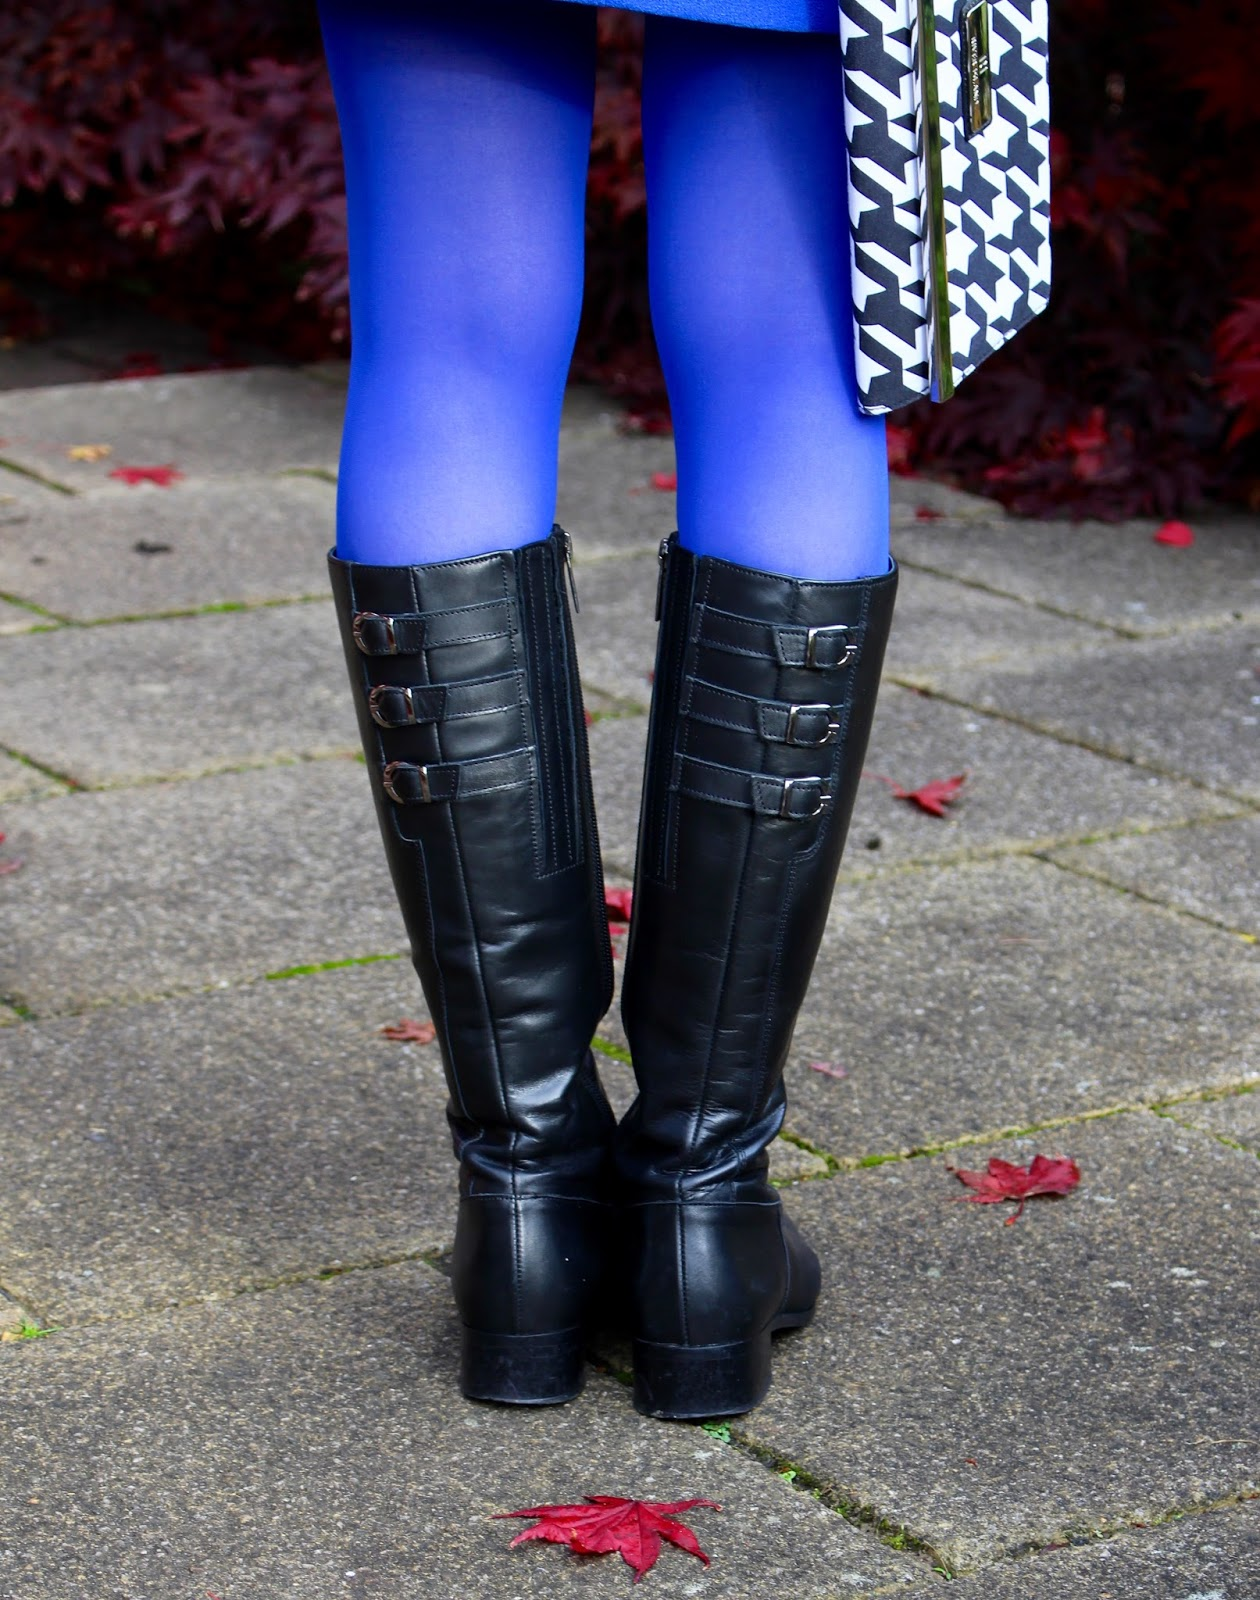 Cobalt Blue and Black Leather boots | Fake fabulous